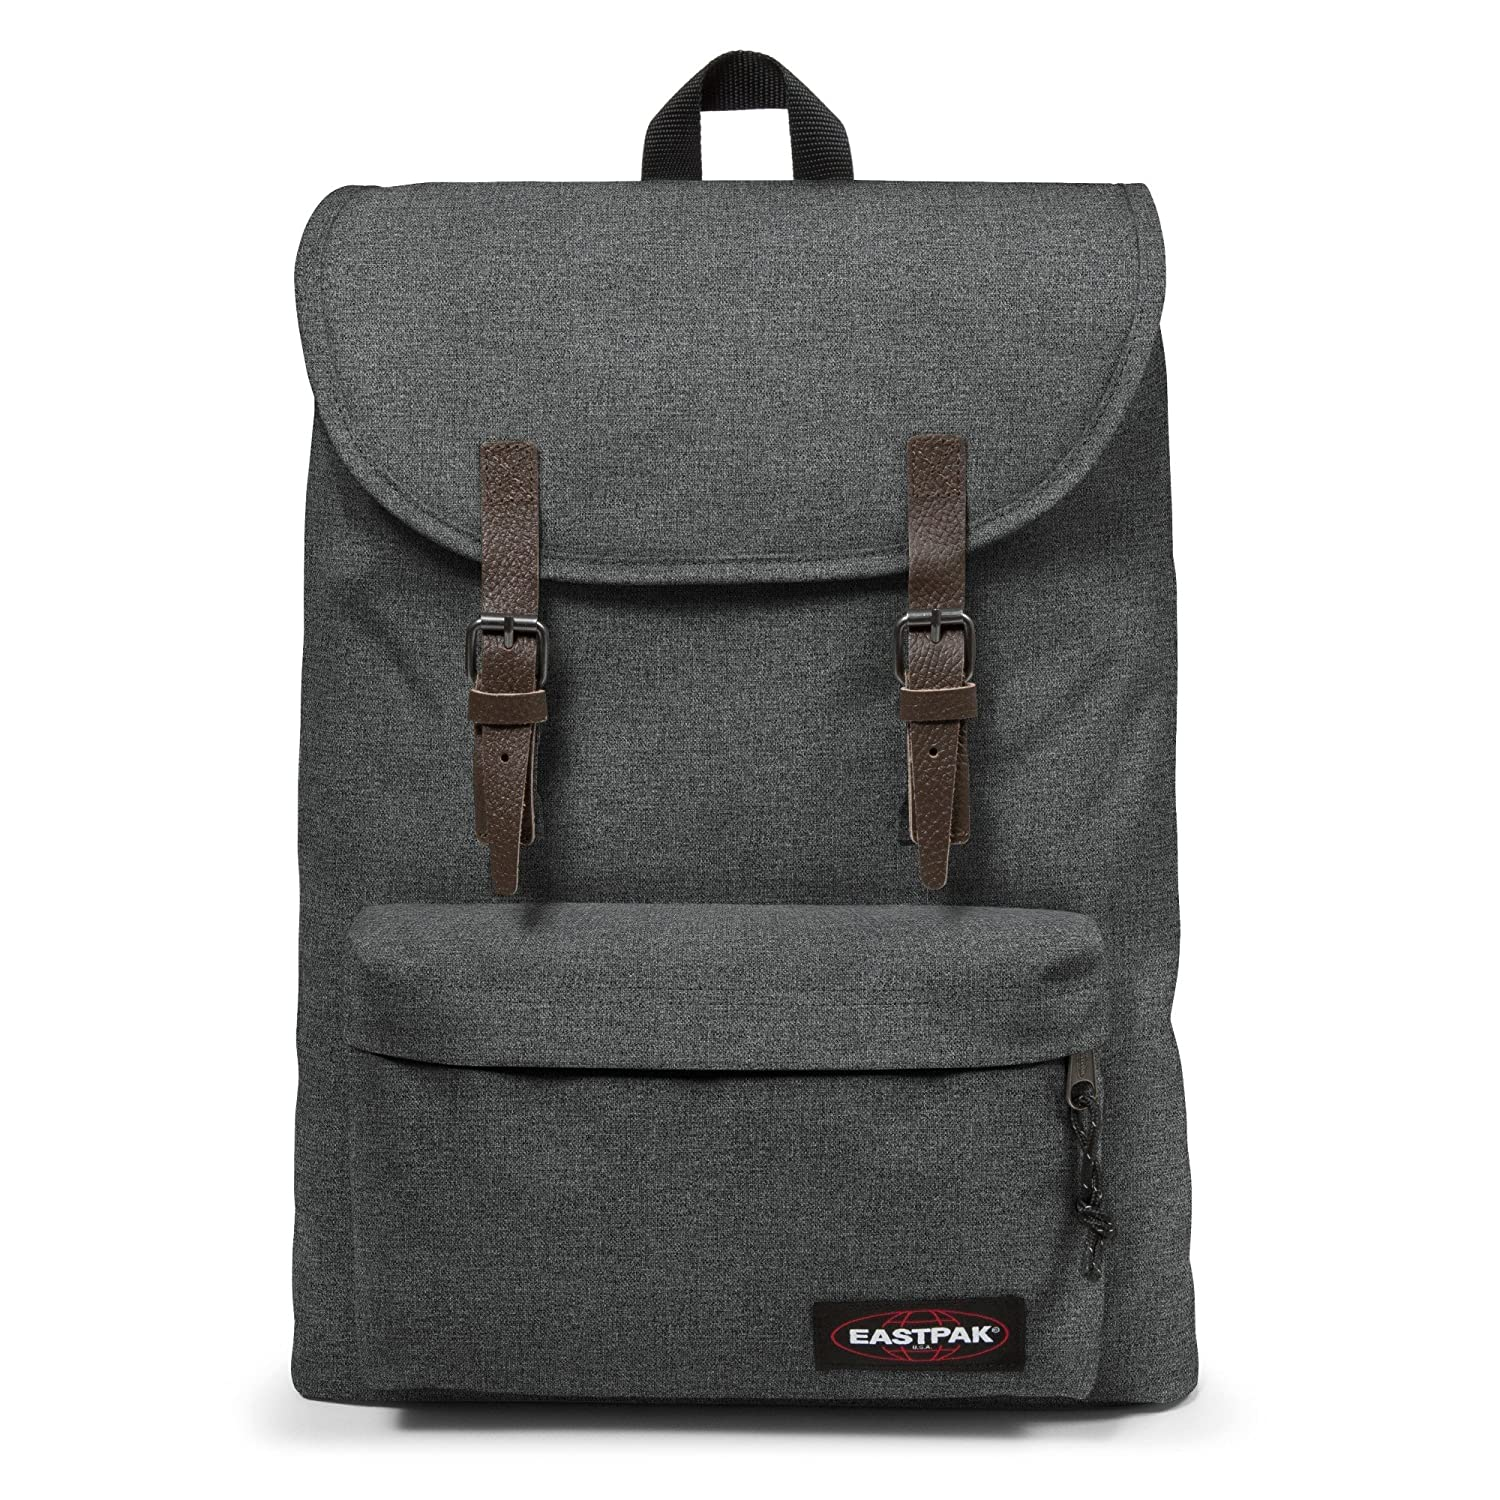 Eastpak London Mochila, Unisex Adulto